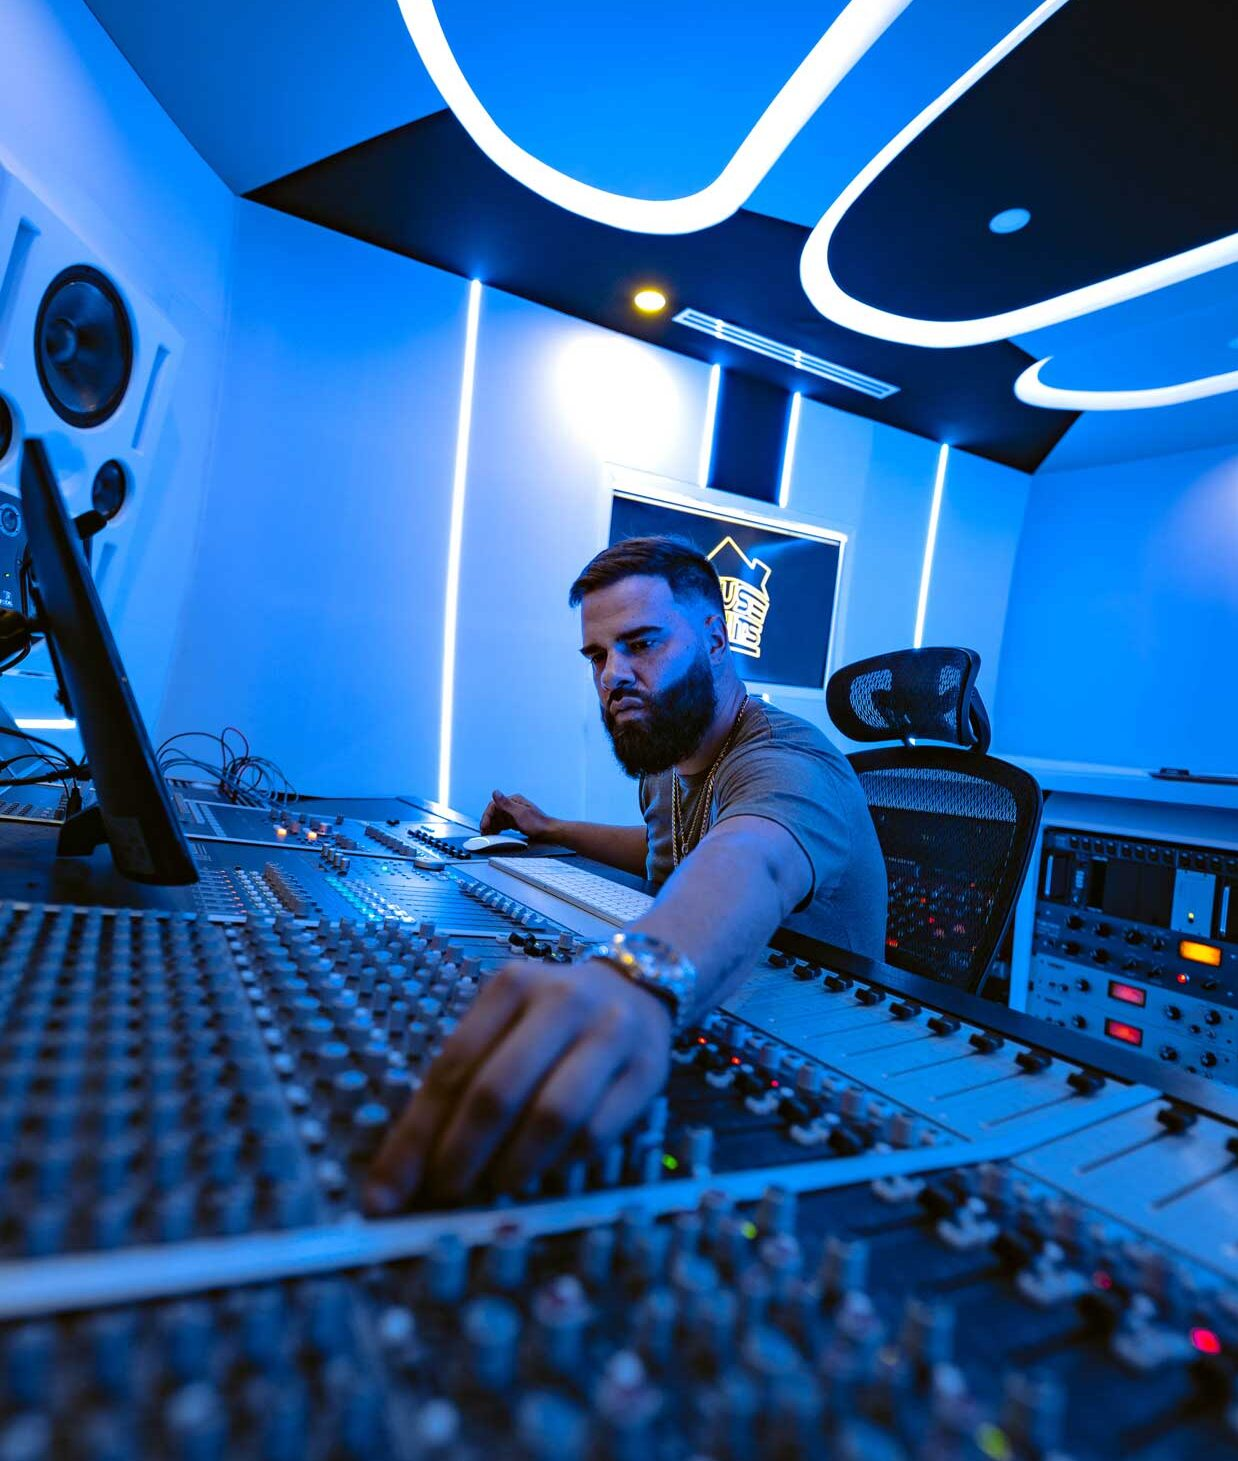 Mr Mix and Master in A Room at recording studio of House of Hits Miami